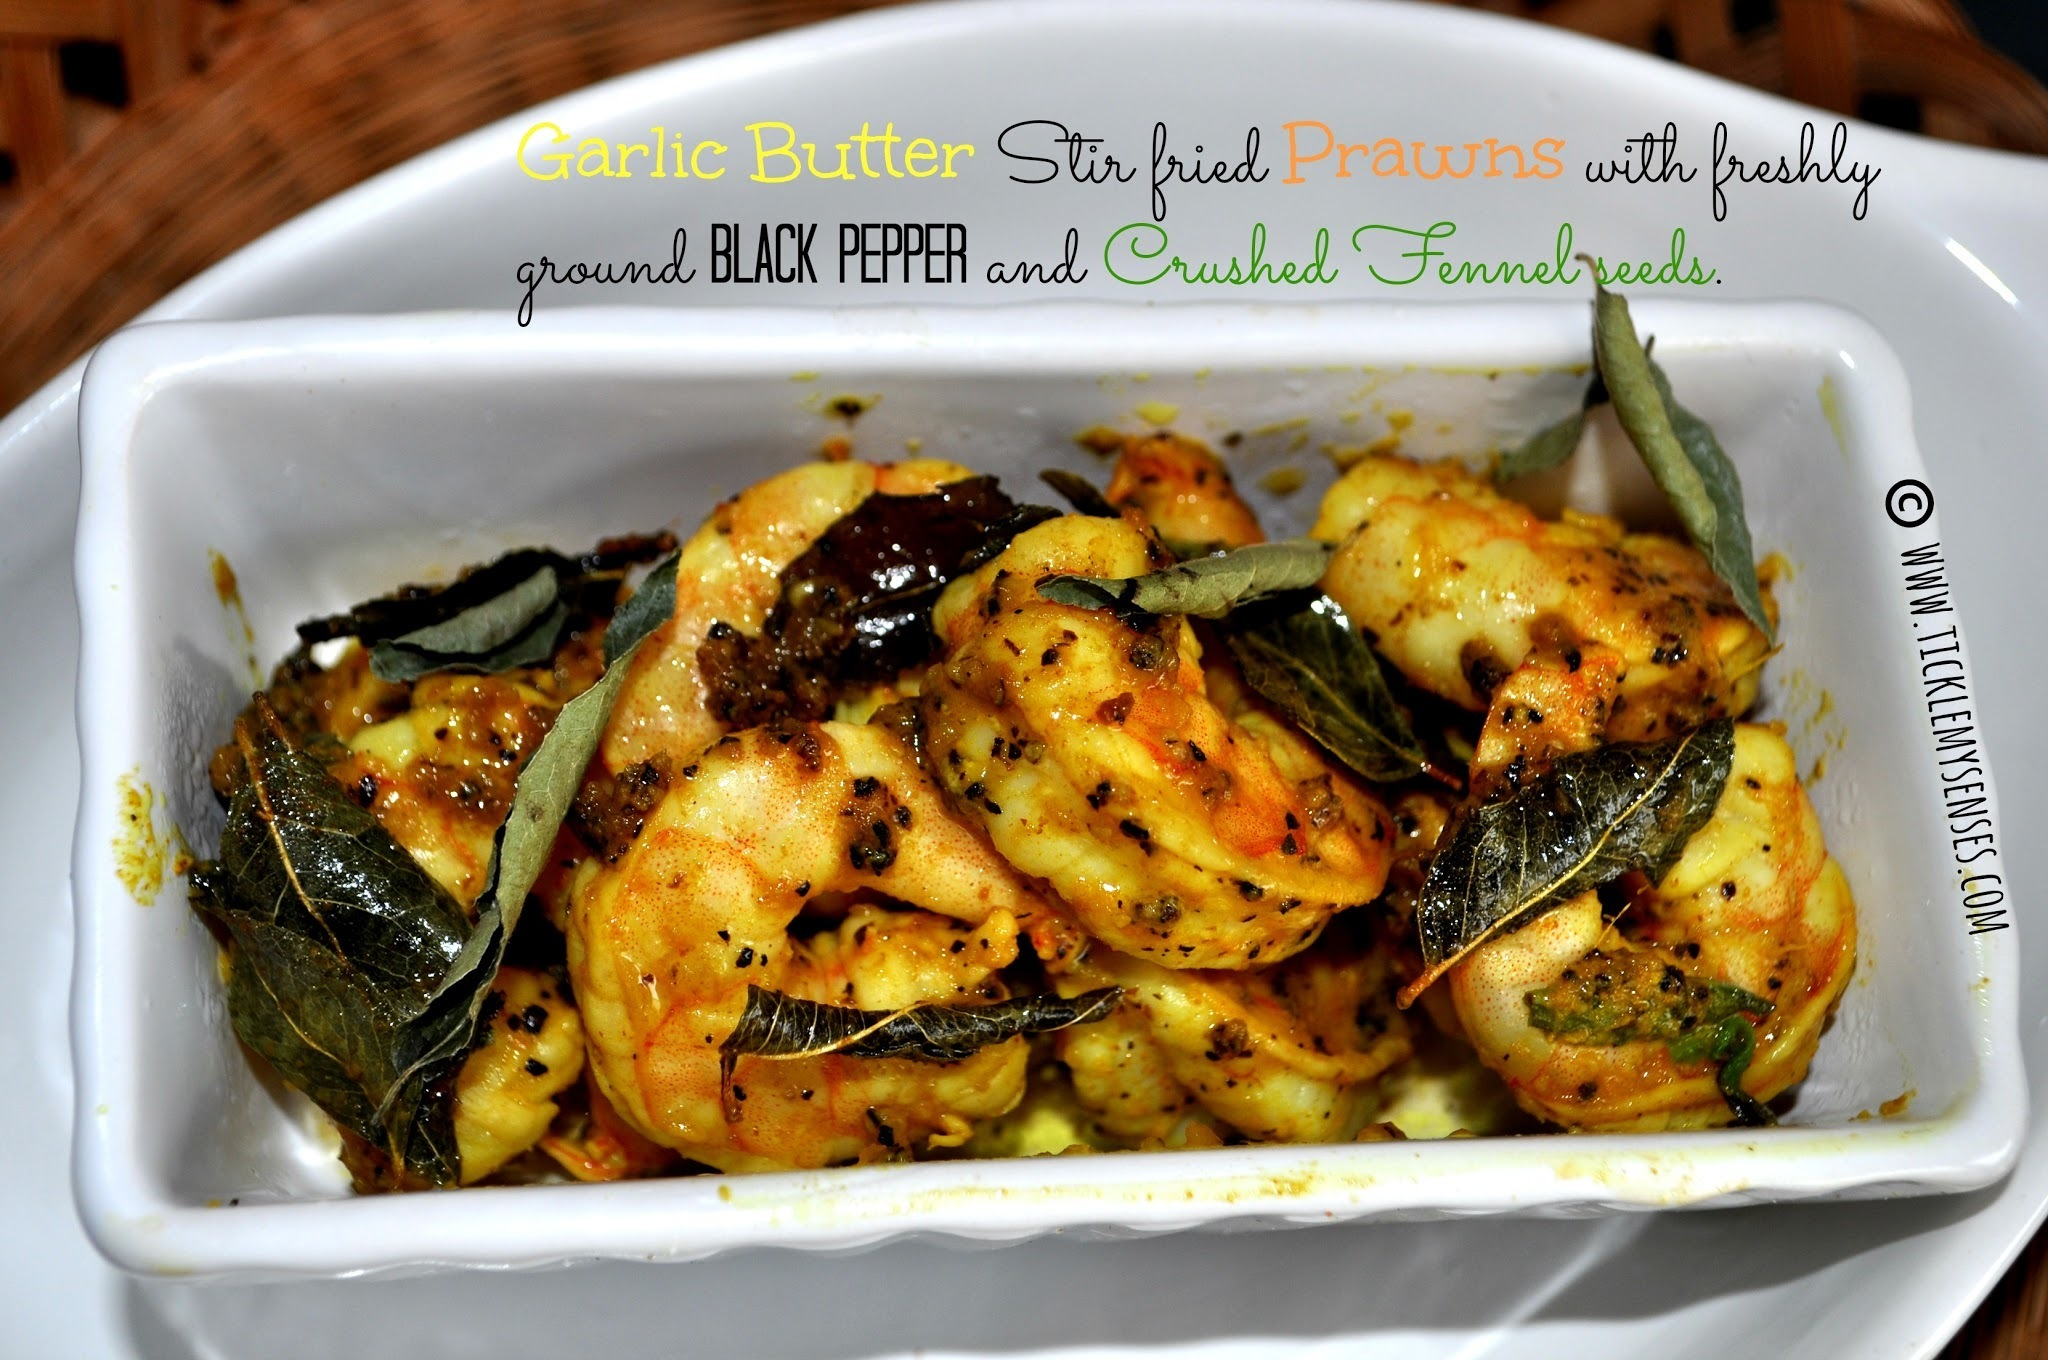 Garlic Butter Stir fried Prawns with Black pepper and Crushed Fennel seeds.